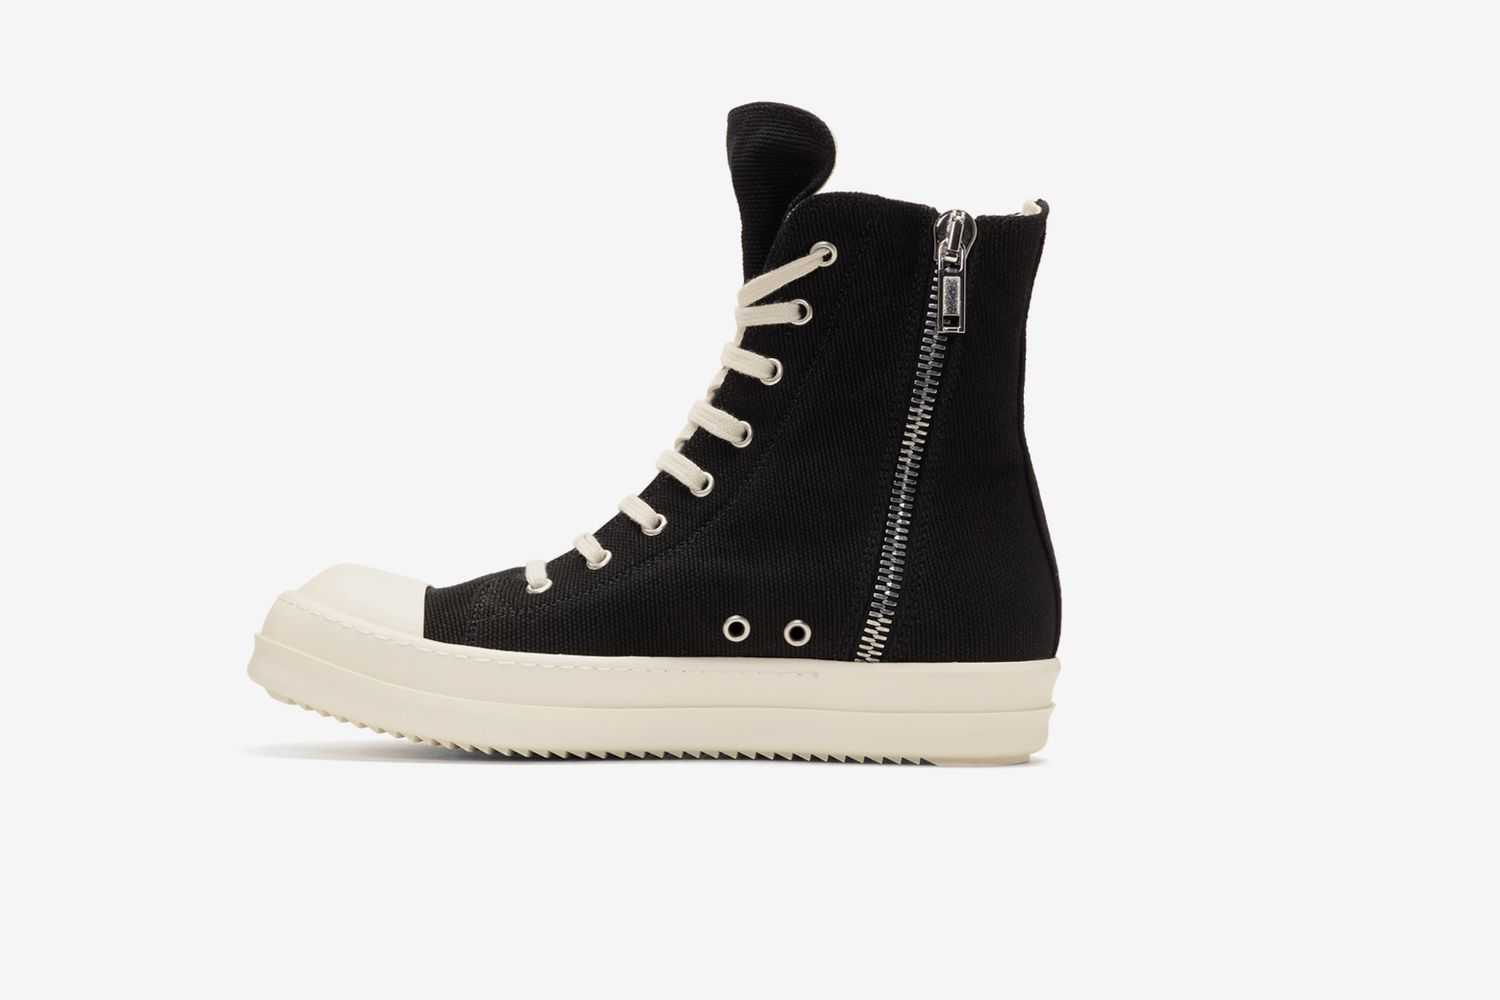 Black Embroidered High-Top Sneakers